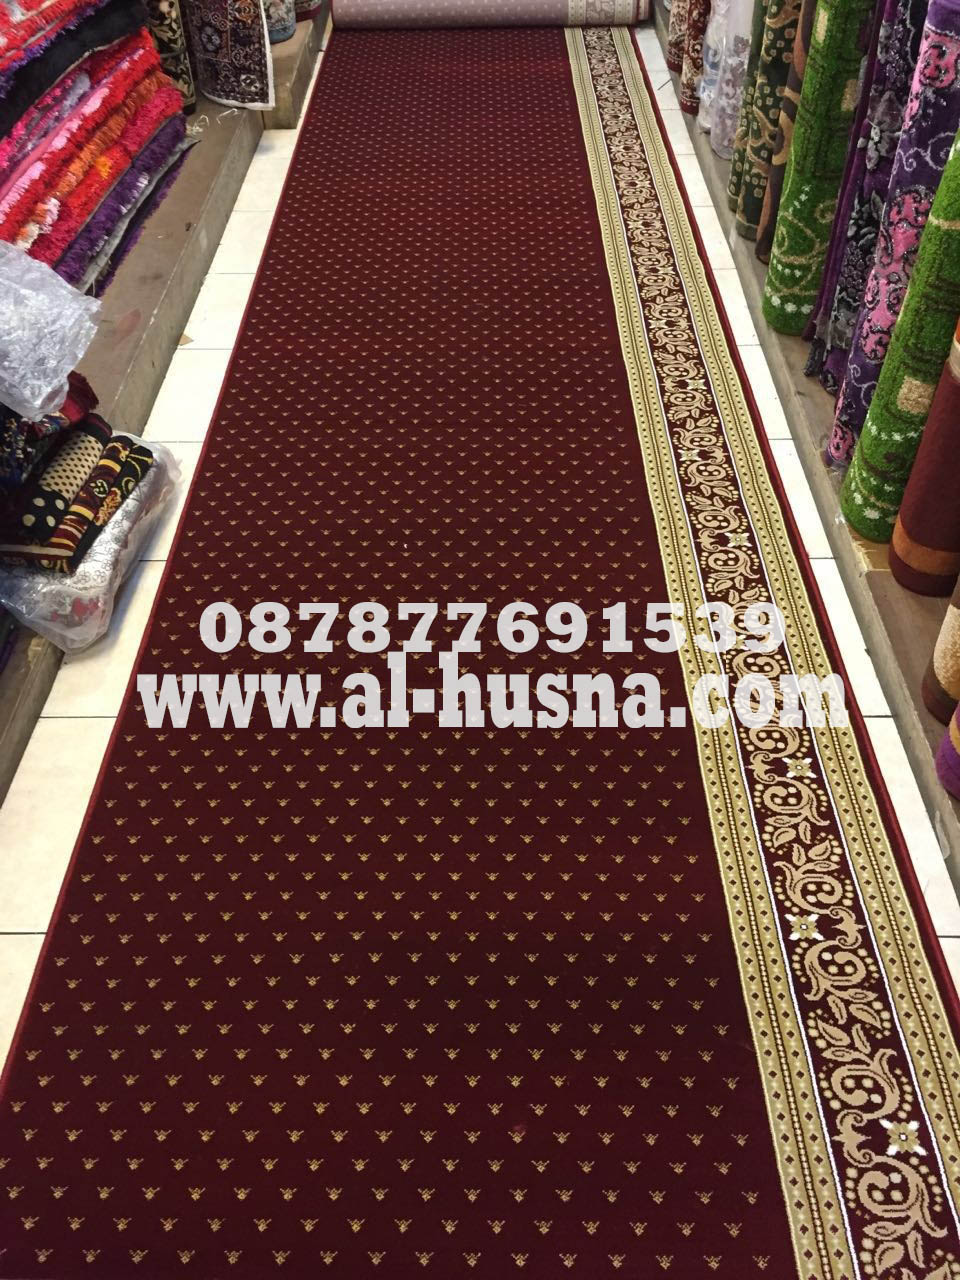 karpet-masjid-royal-tebriz-5.jpg